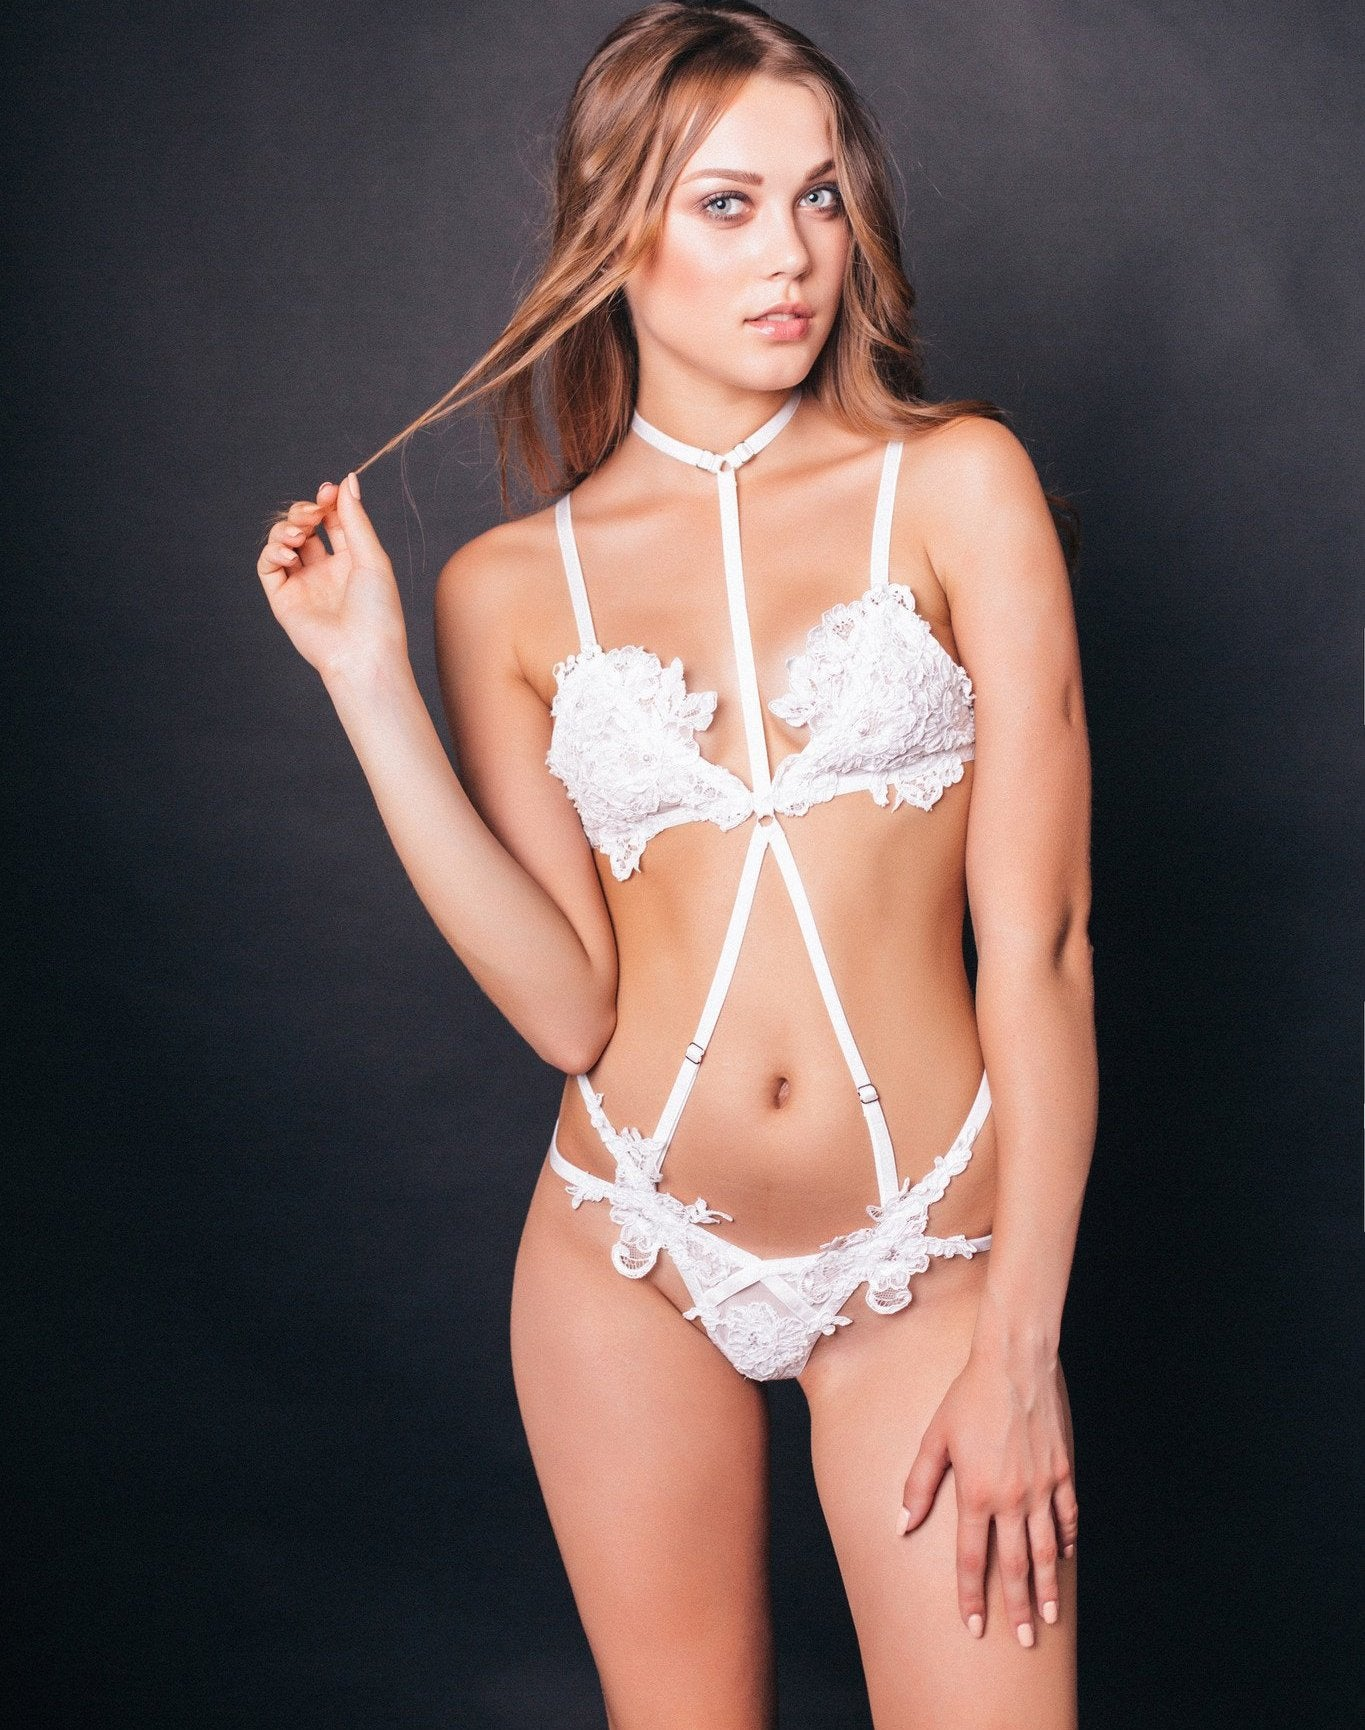 Eva Bridal Lingerie luxury